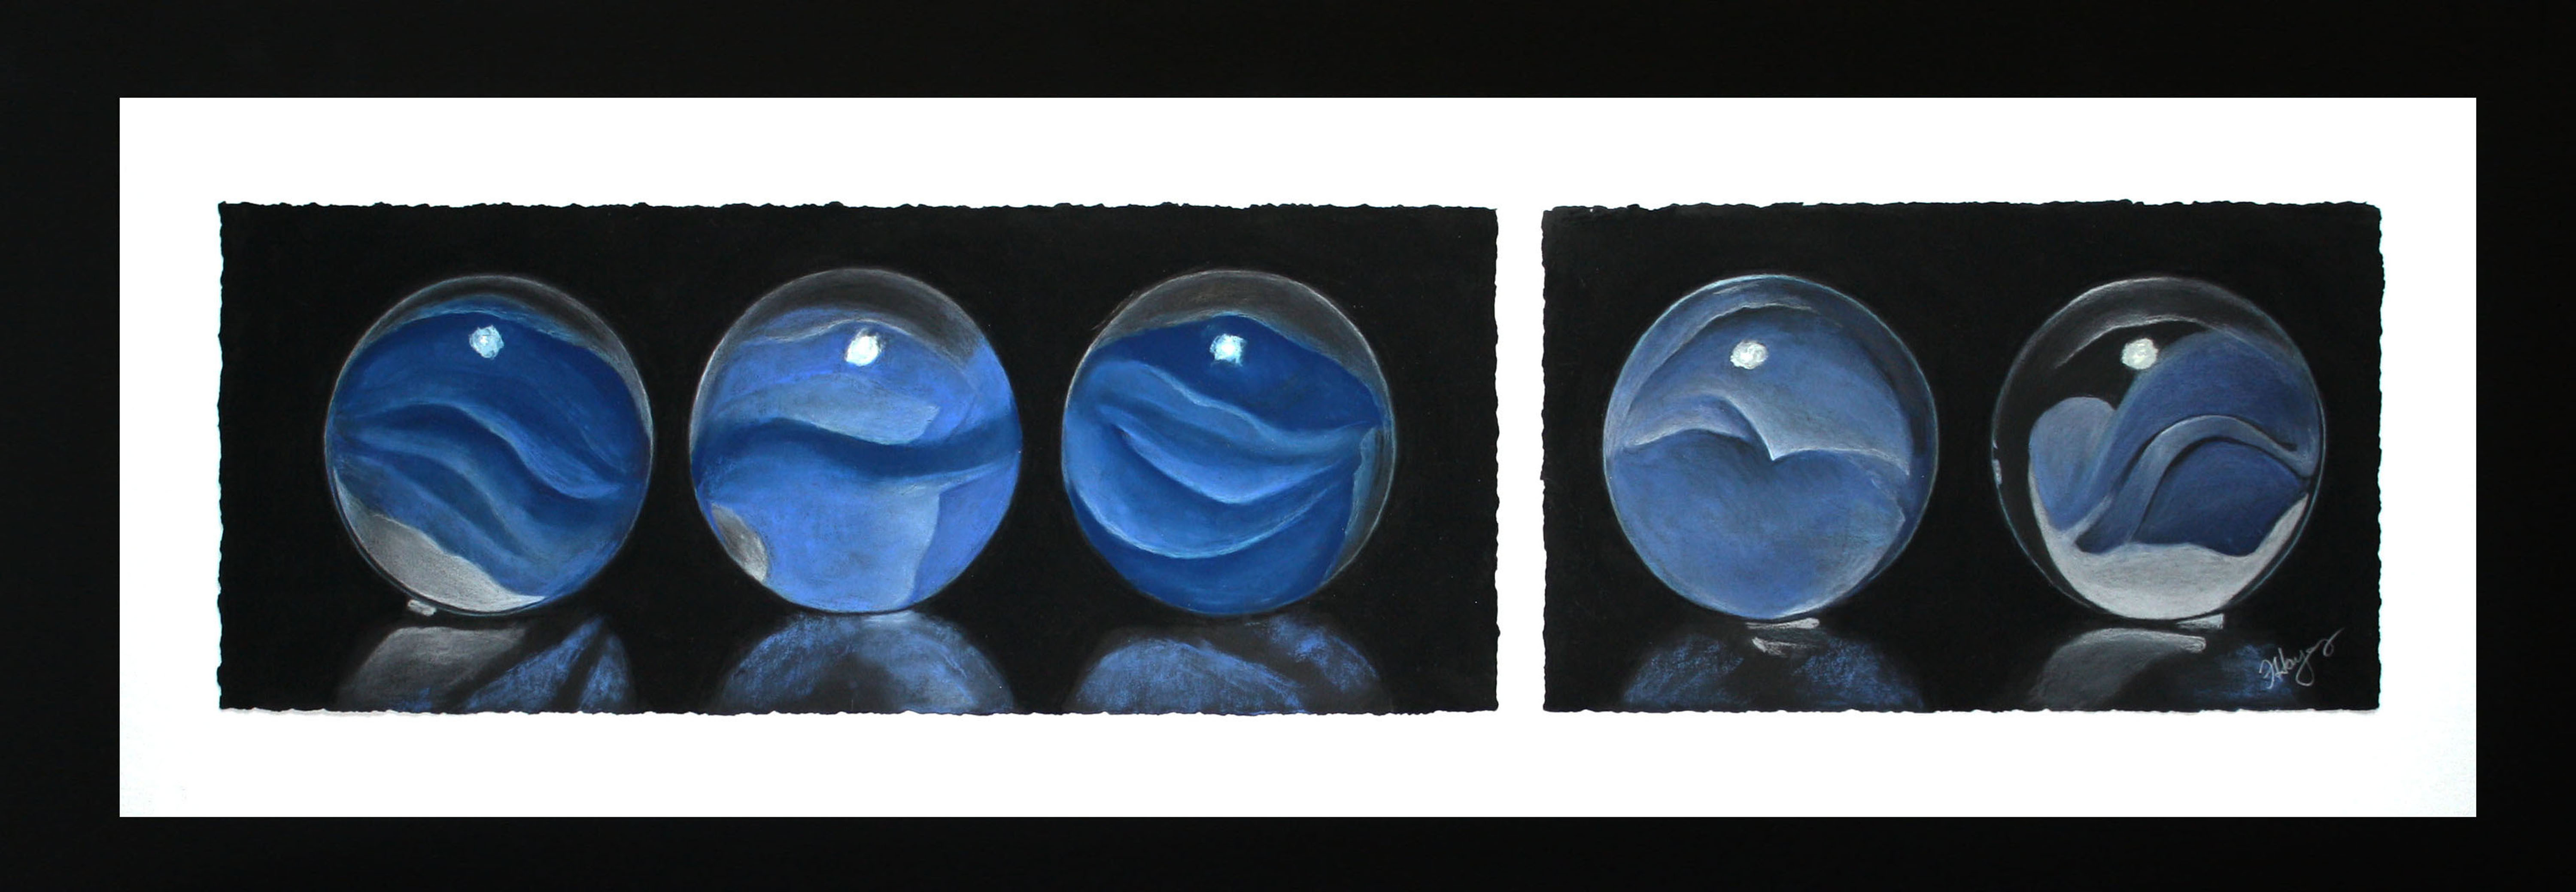 Blue Marbles by Flo Hayes